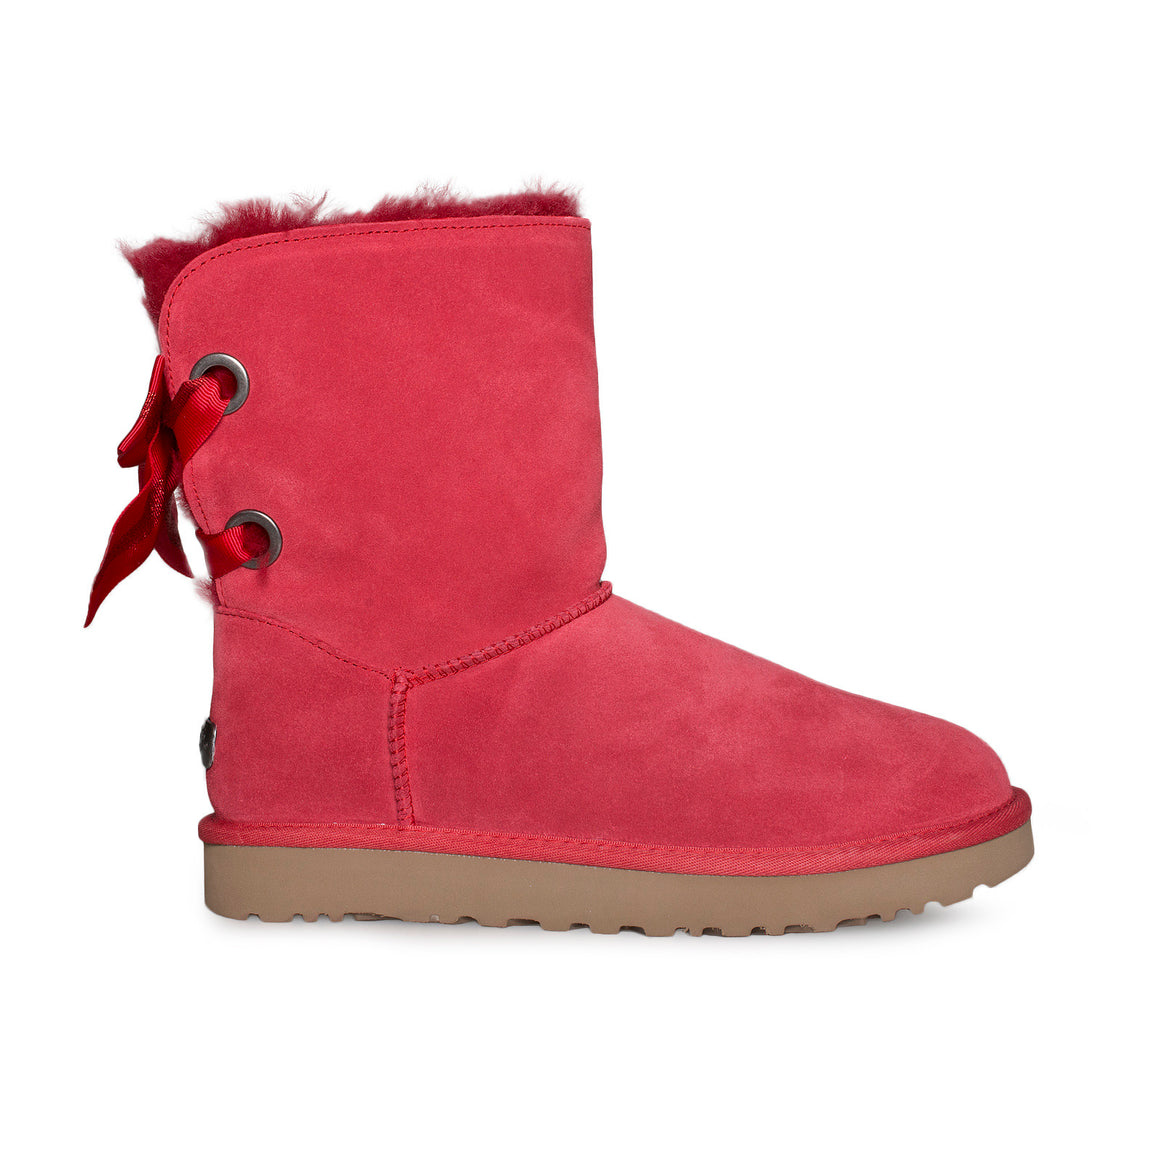 UGG Customizable Bailey Bow Short Ribbon Red Boots - Women's